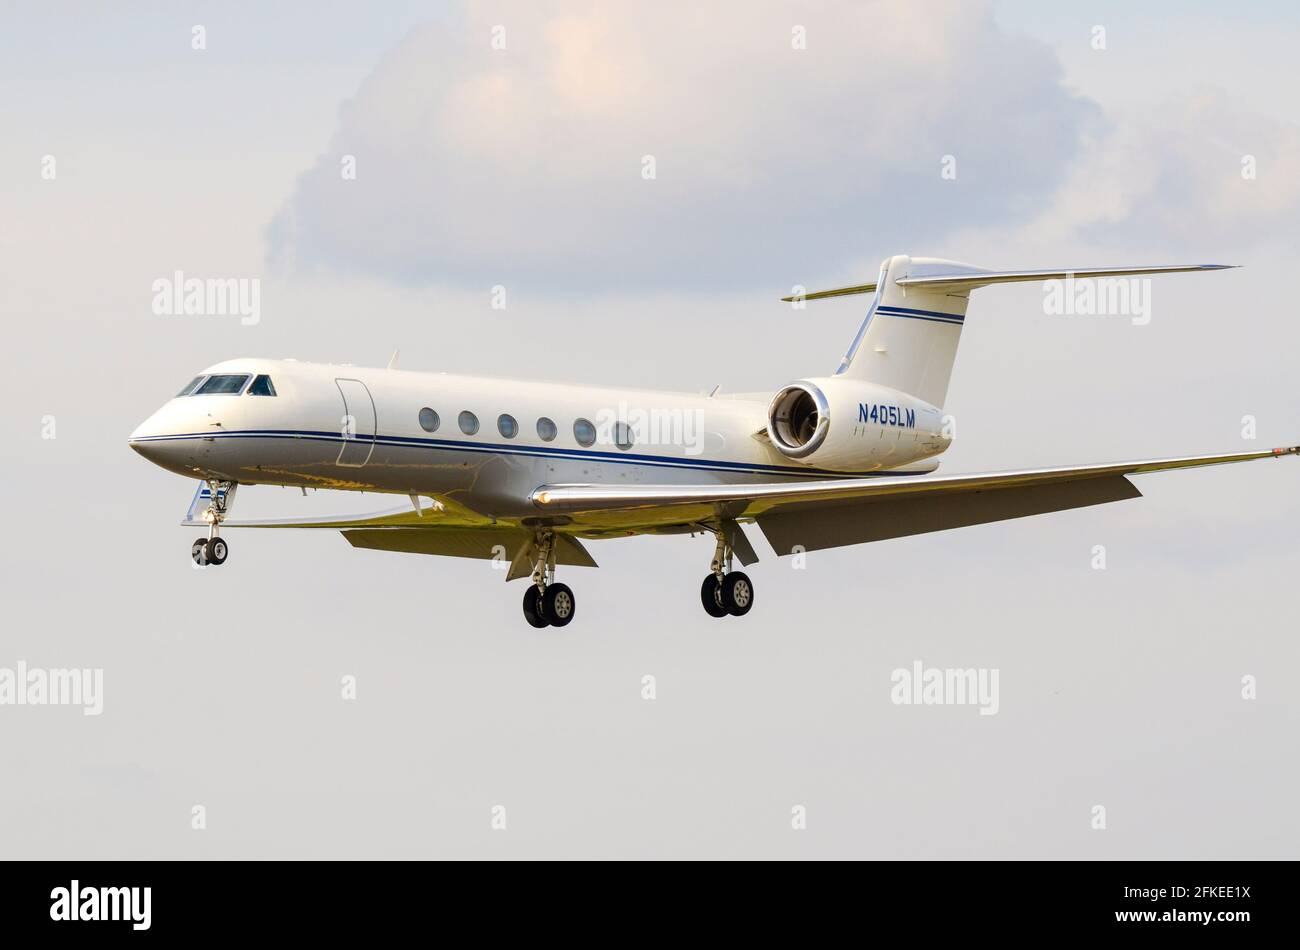 gulfstream-v-gv-g-v-corporate-jet-plane-n405lm-operated-by-lockheed-martin-landing-at-raf-fairford-business-jet-bizjet-space-for-copy-2FKEE1X.jpg